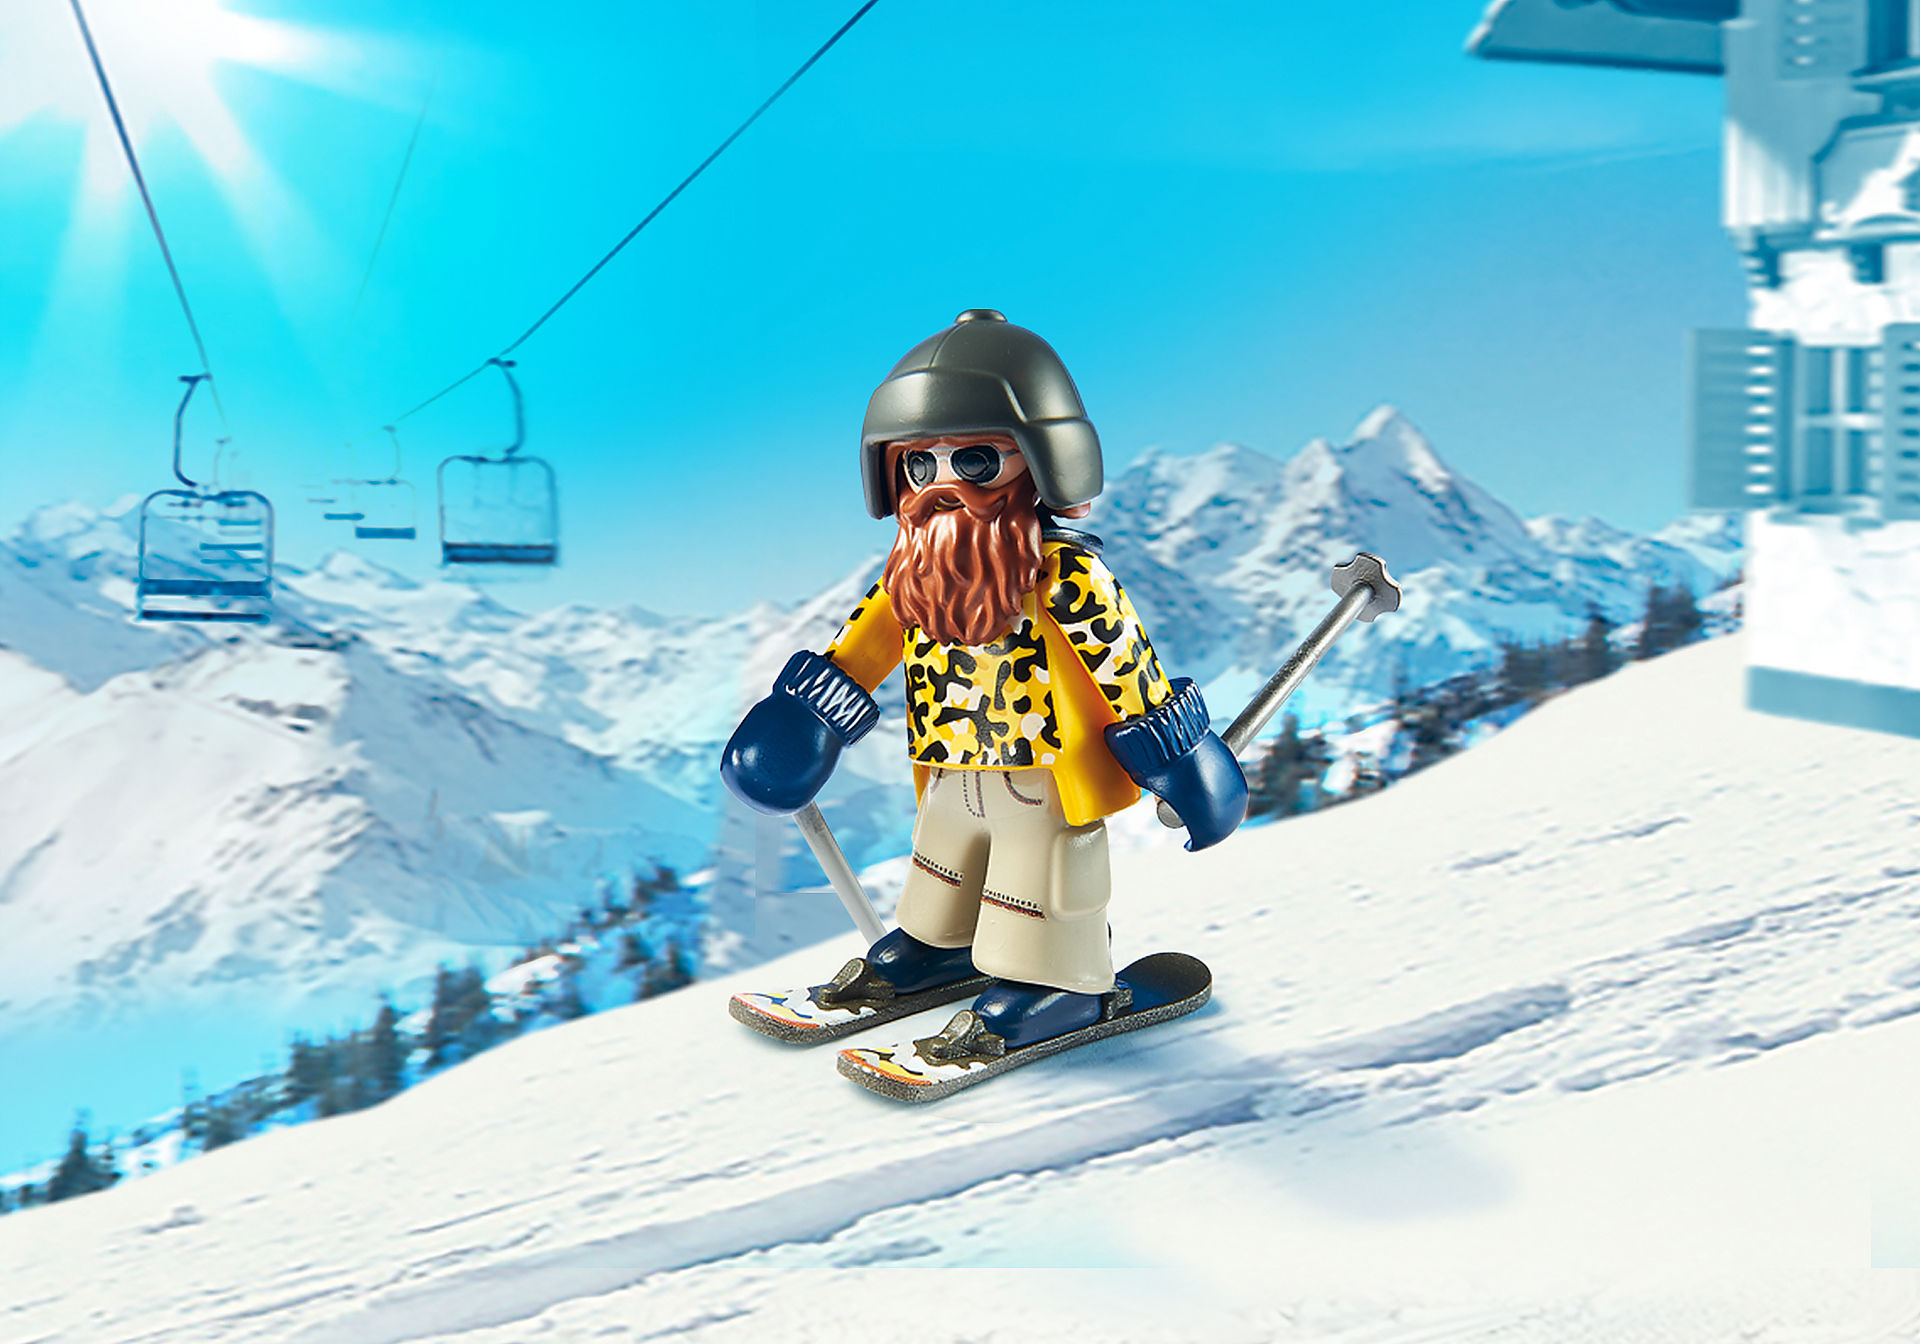 http://media.playmobil.com/i/playmobil/9284_product_detail/Skier with Poles